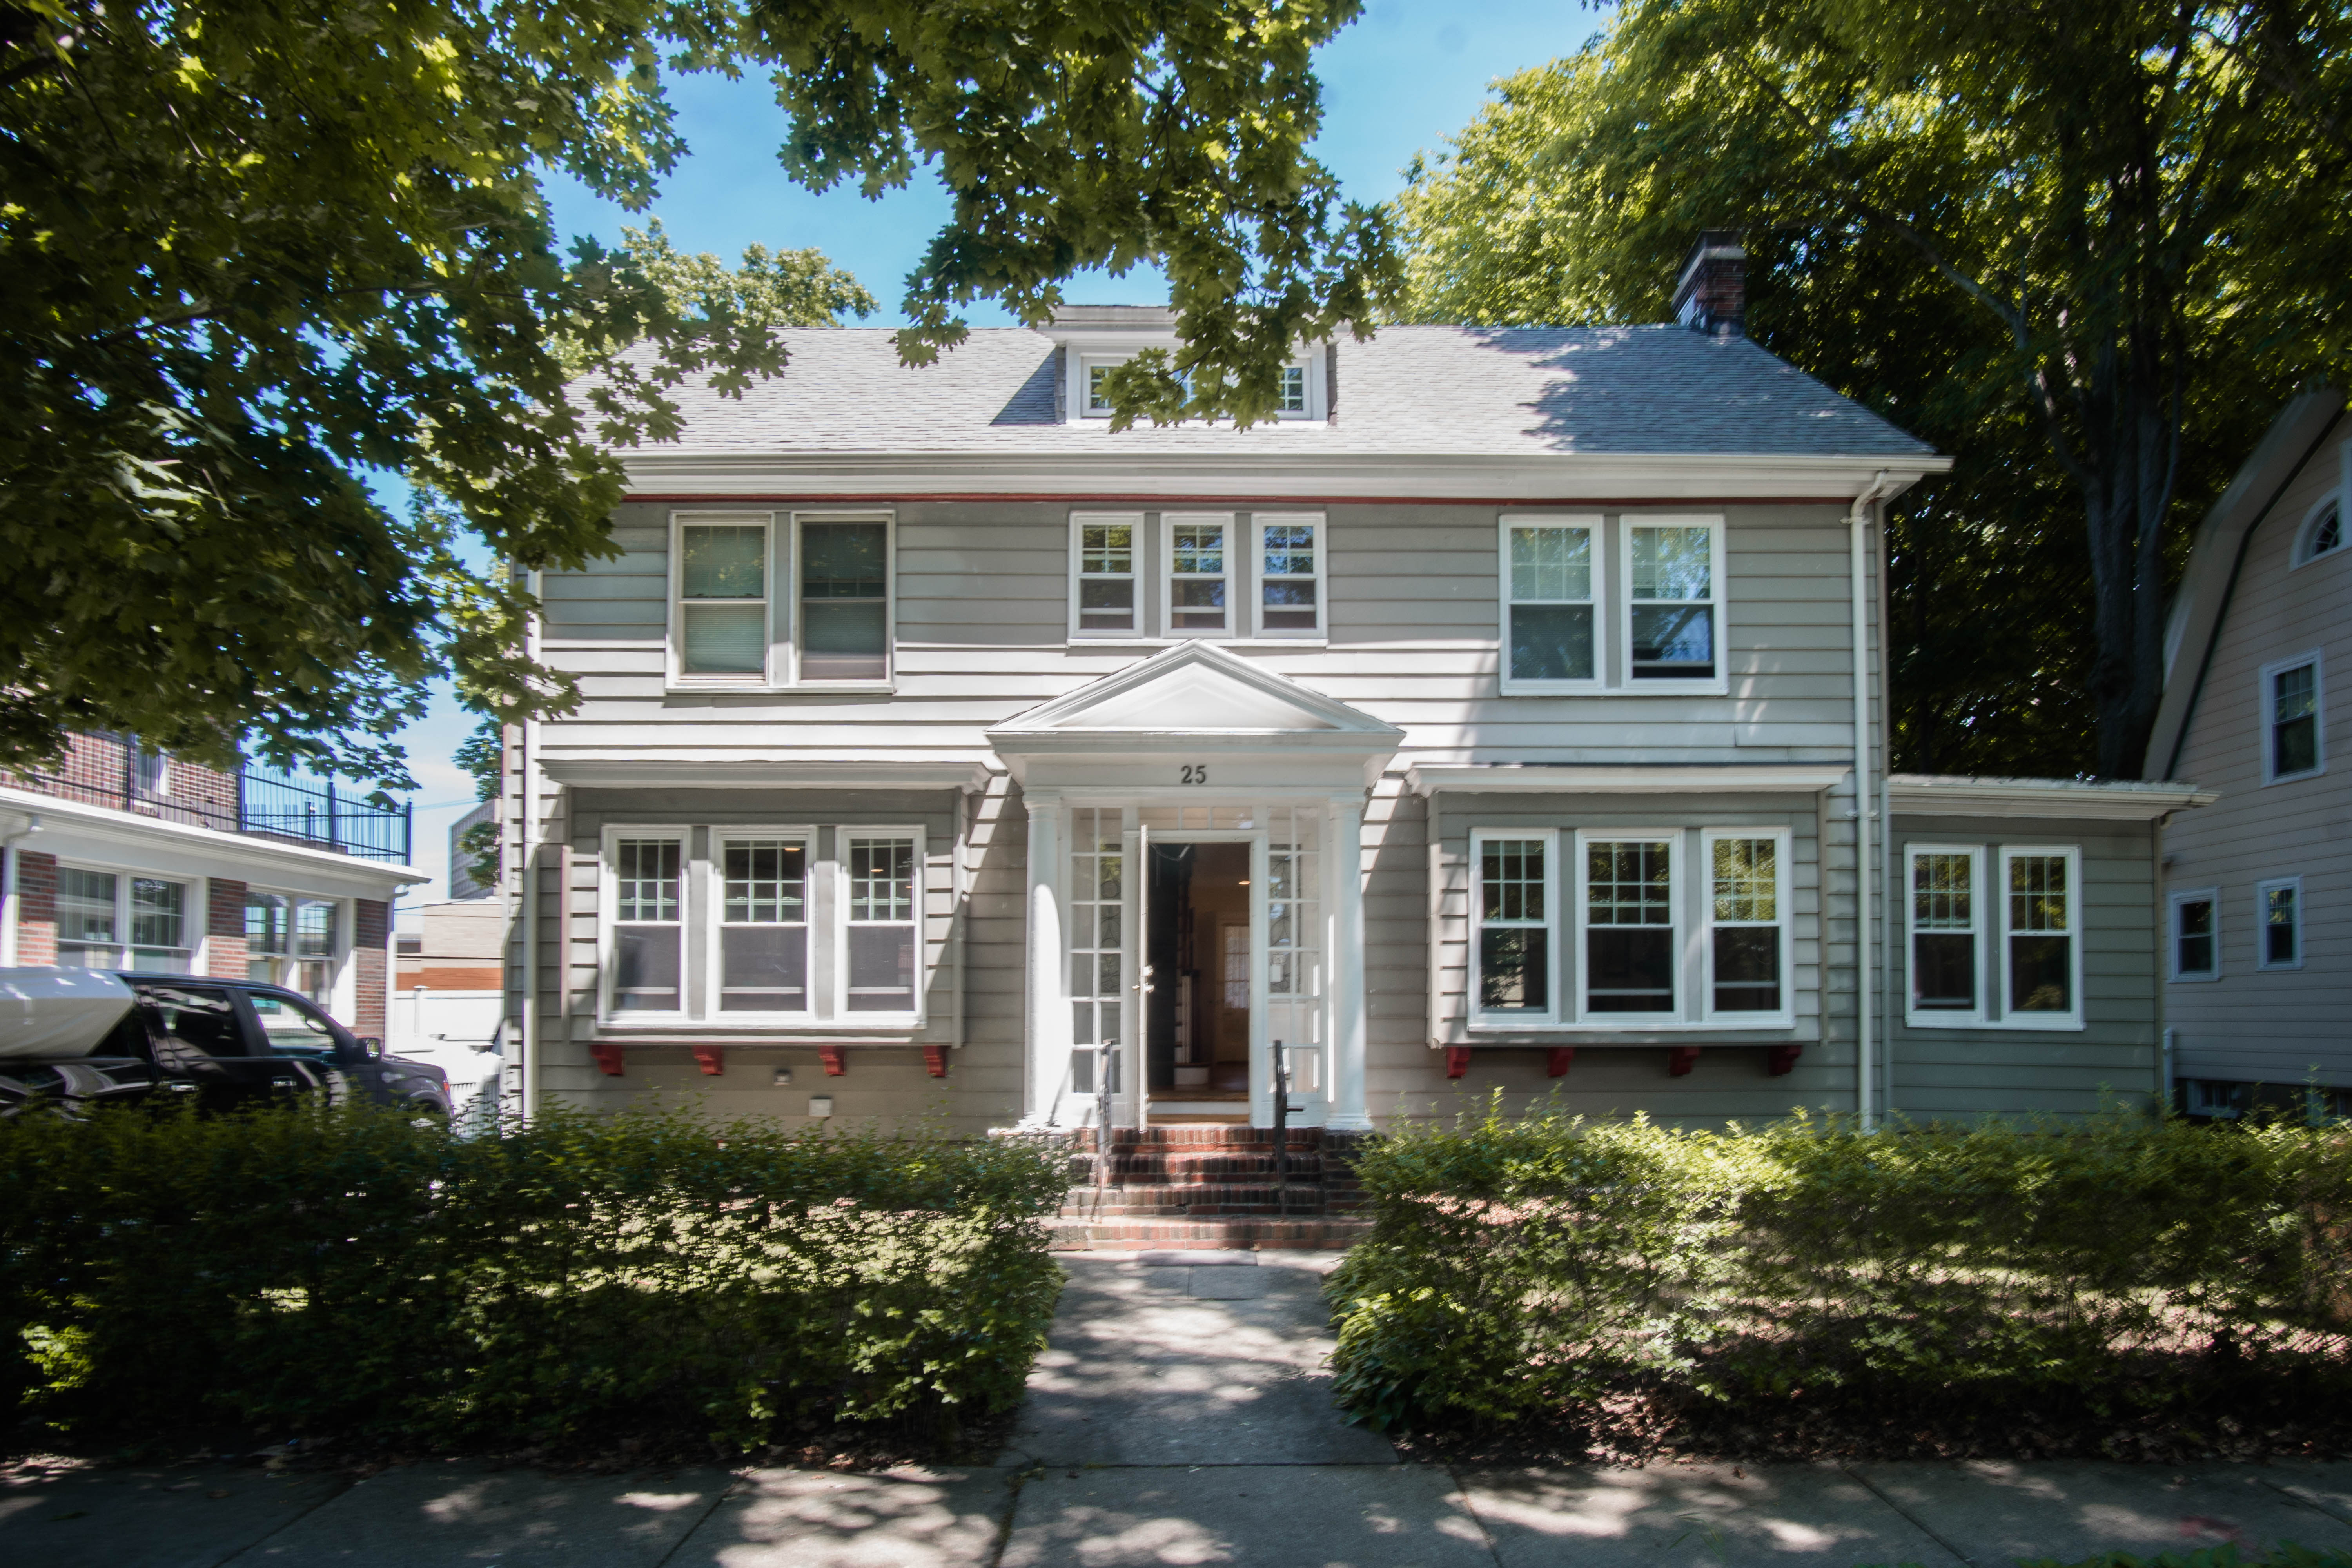 Six-Bedroom Single Family House in the Heart of Coolidge Corner on the Market for $9,500/month